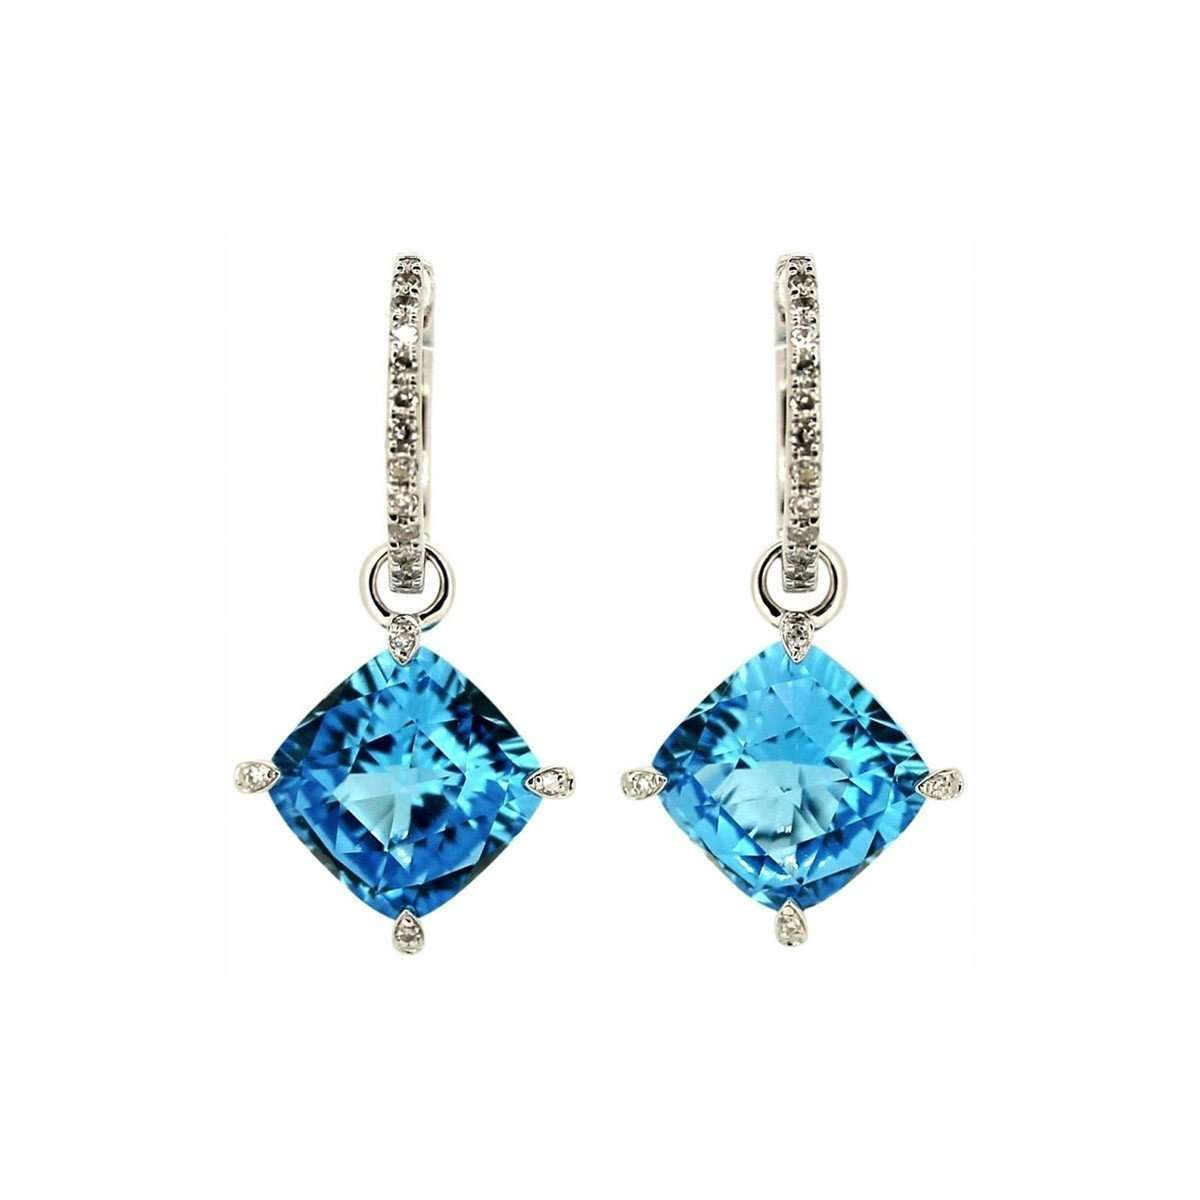 Emilie Blue Topaz Earrings-Kura Fine Jewellery-JewelStreet US